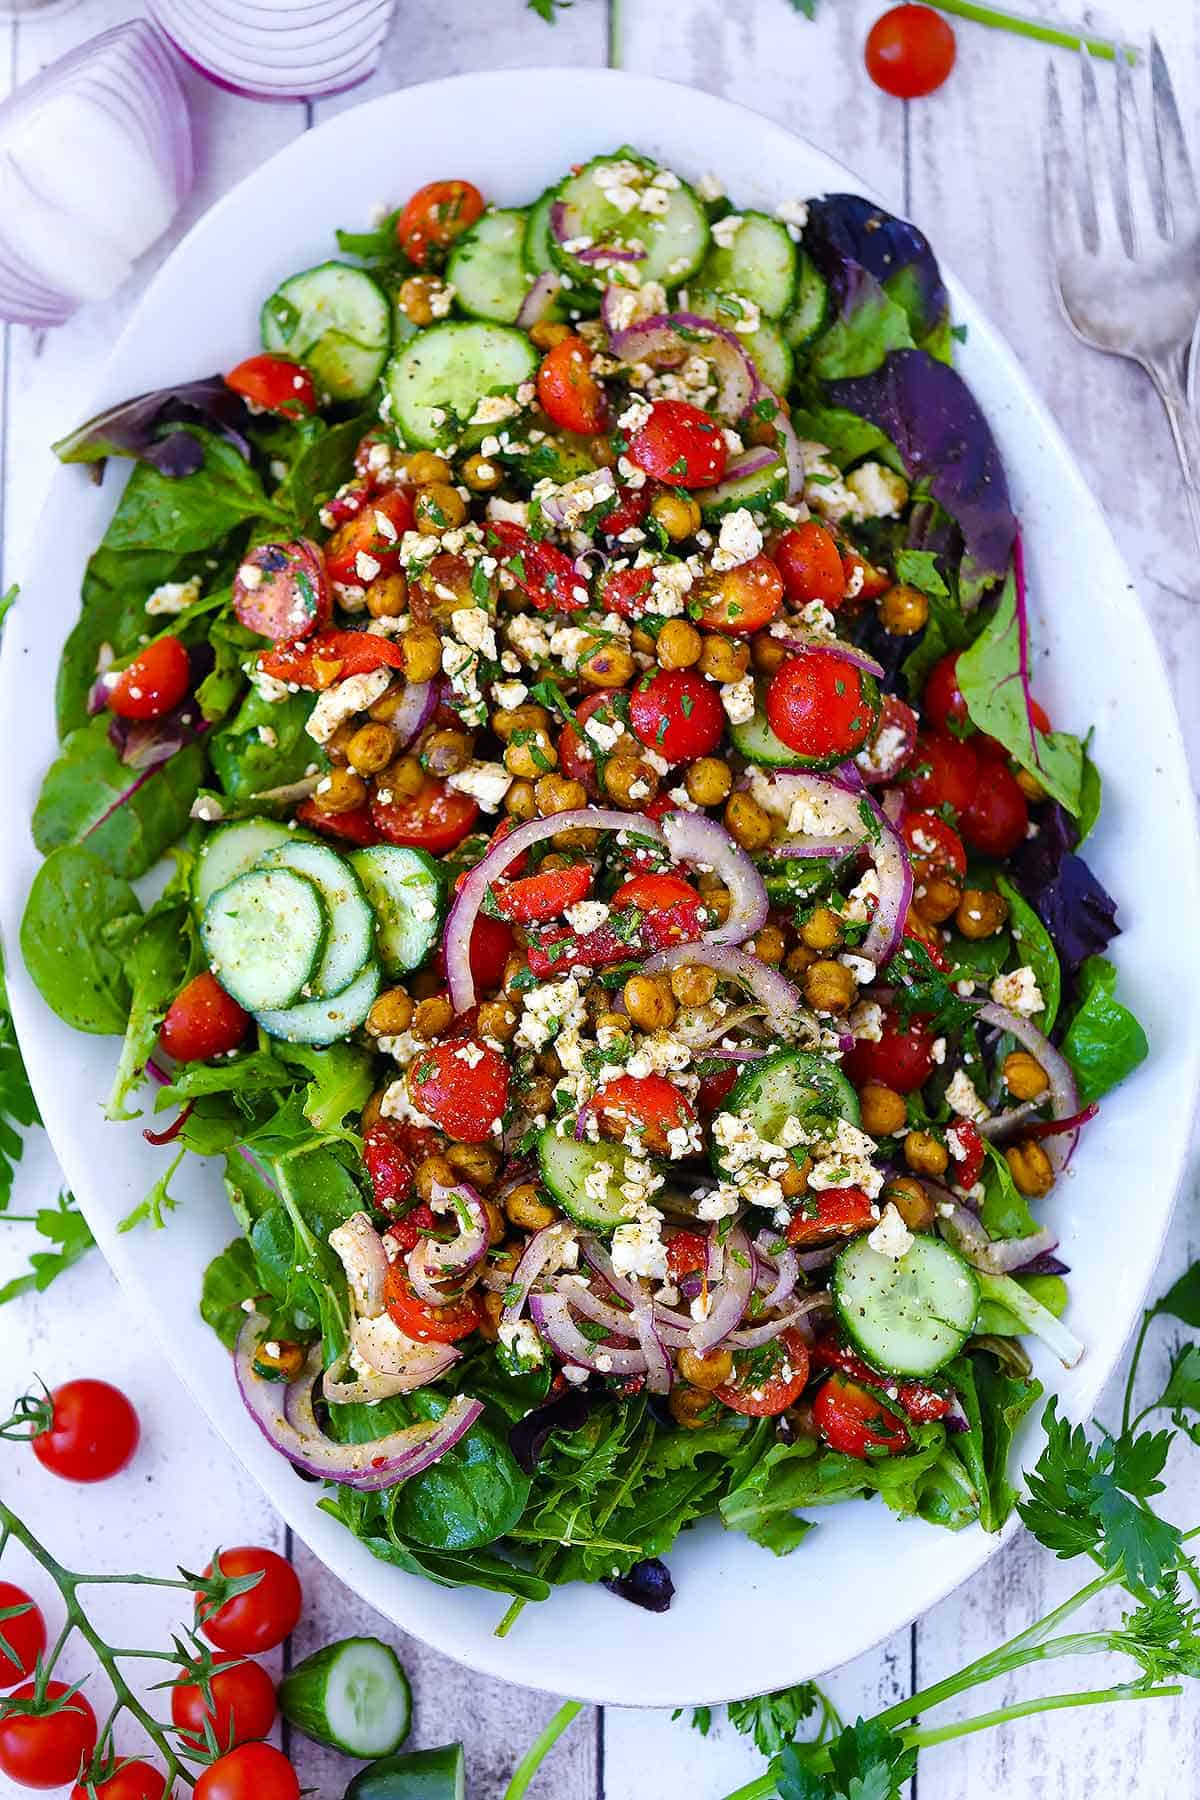 Overhead photo of a white platter with roasted chickpea salad.